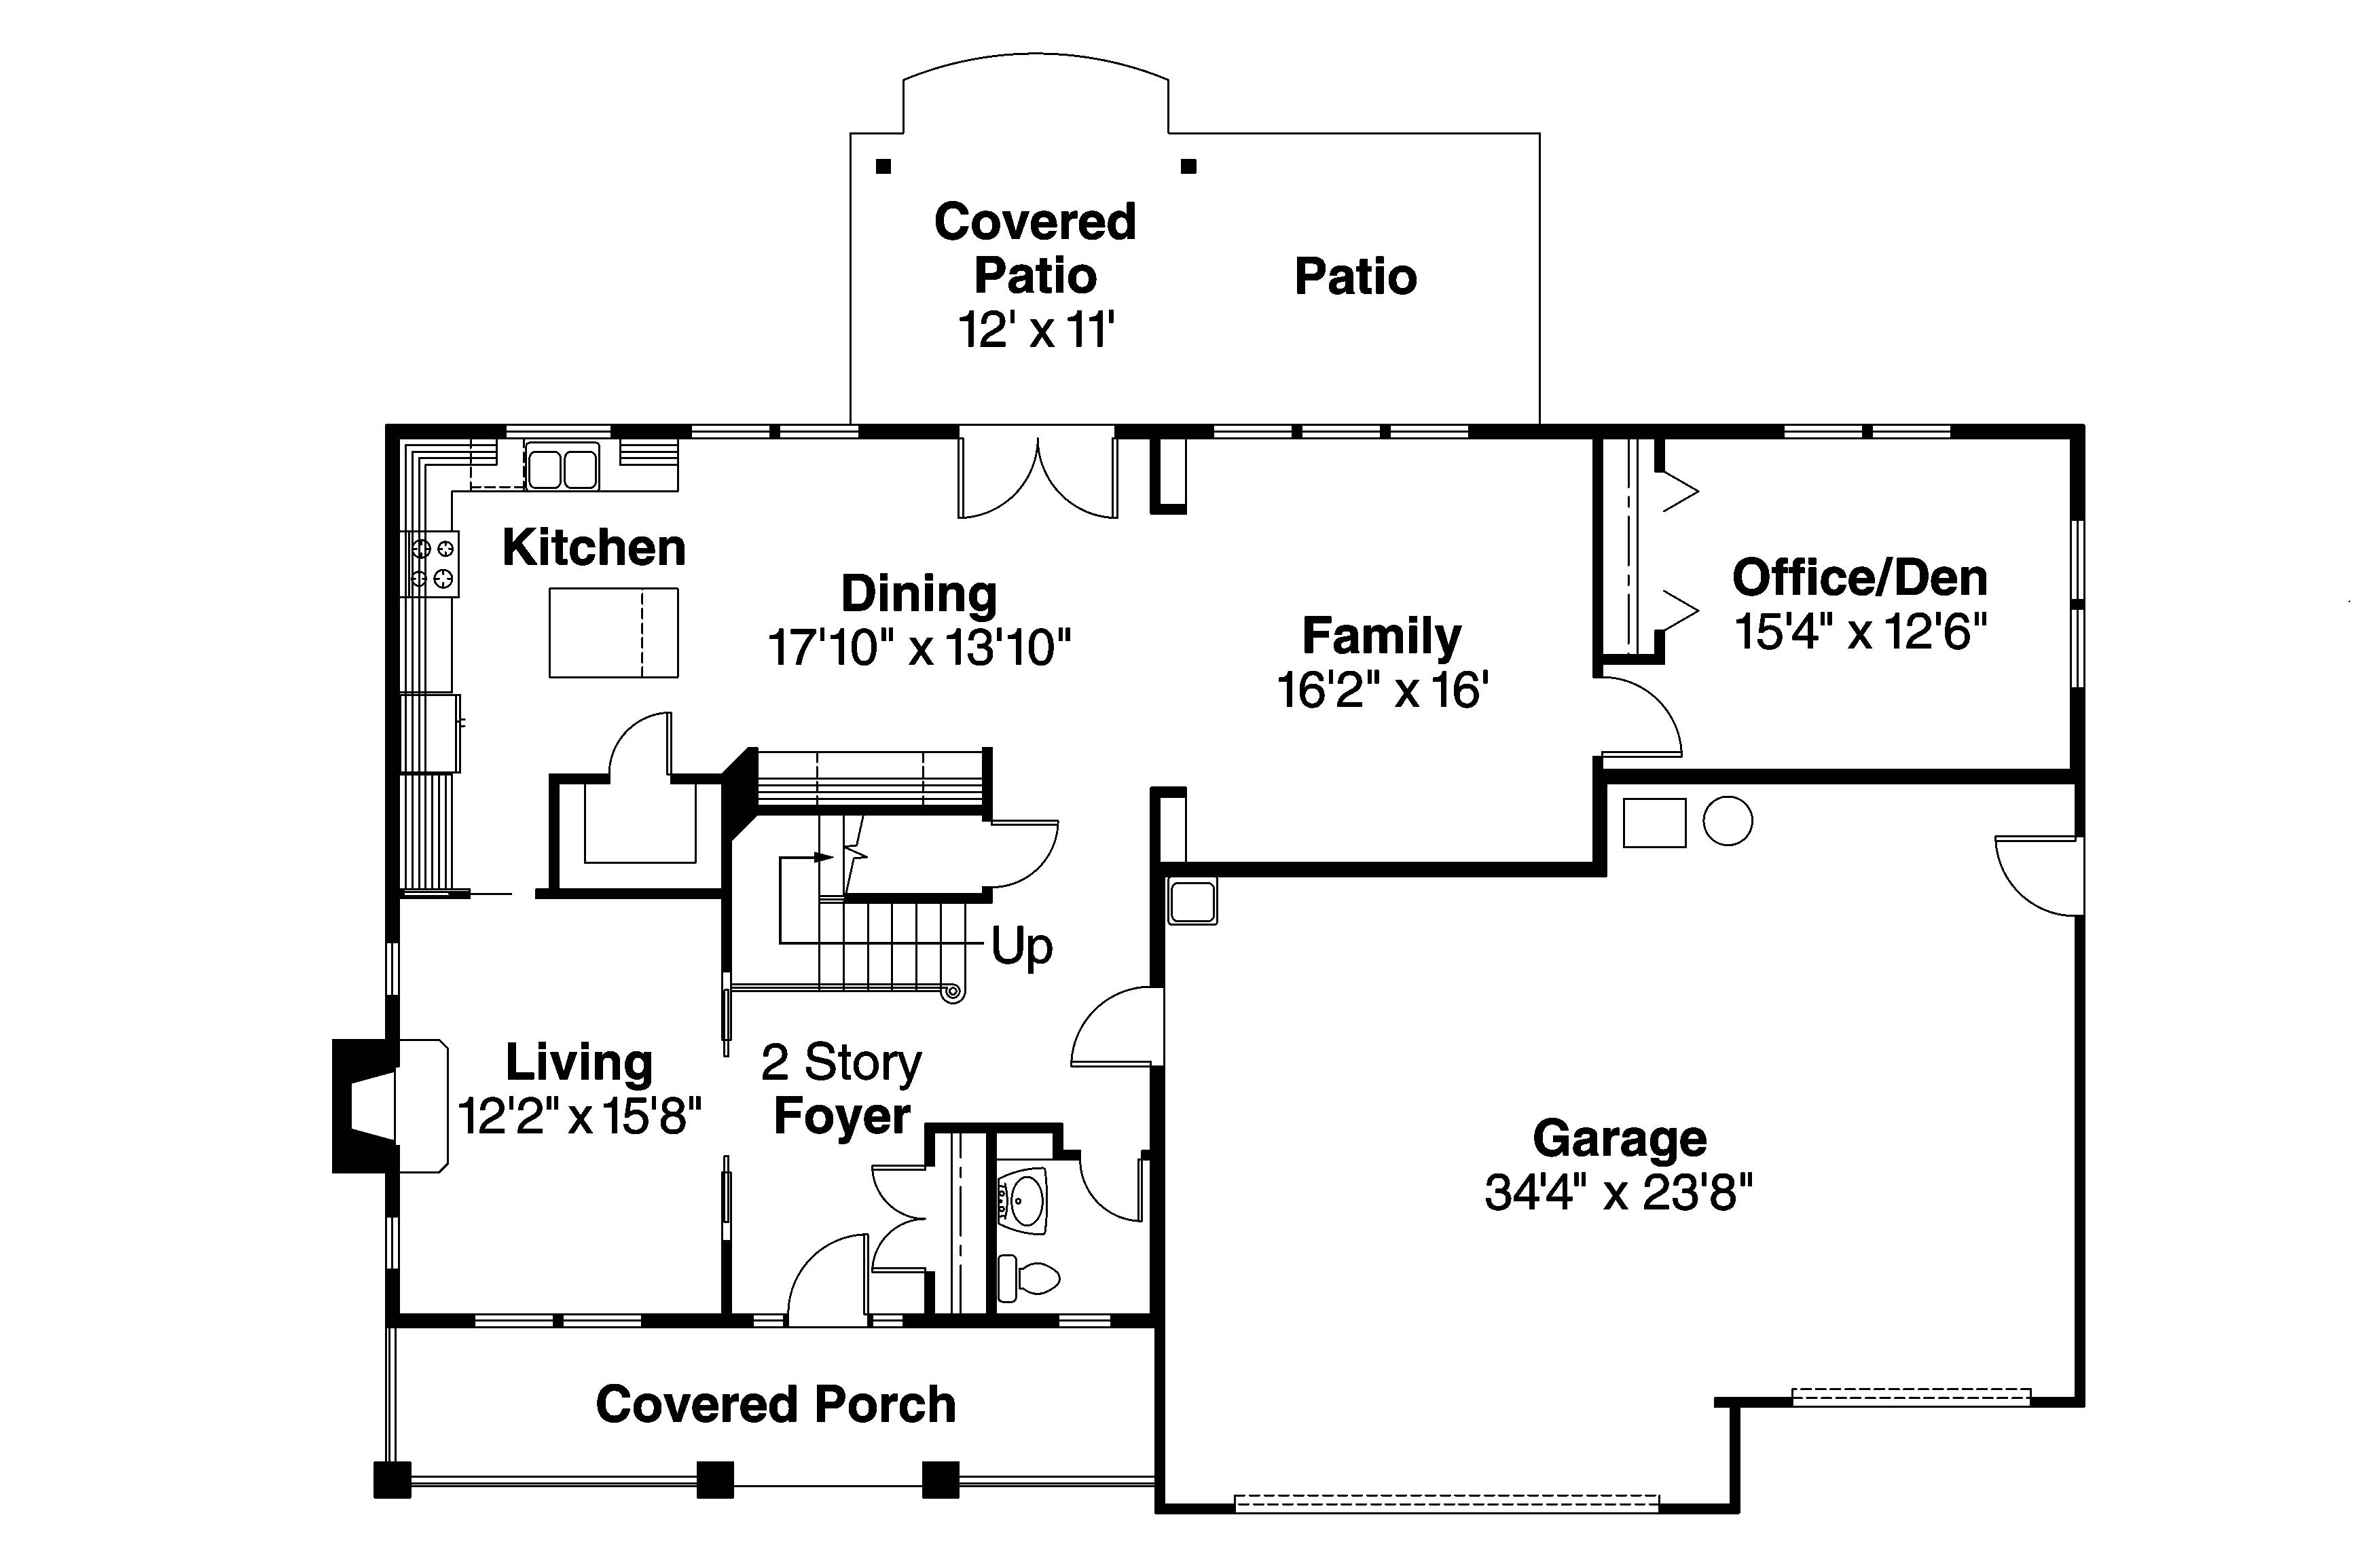 Bungalow house plans cavanaugh 30 490 associated designs for 2 story house floor plans and elevations